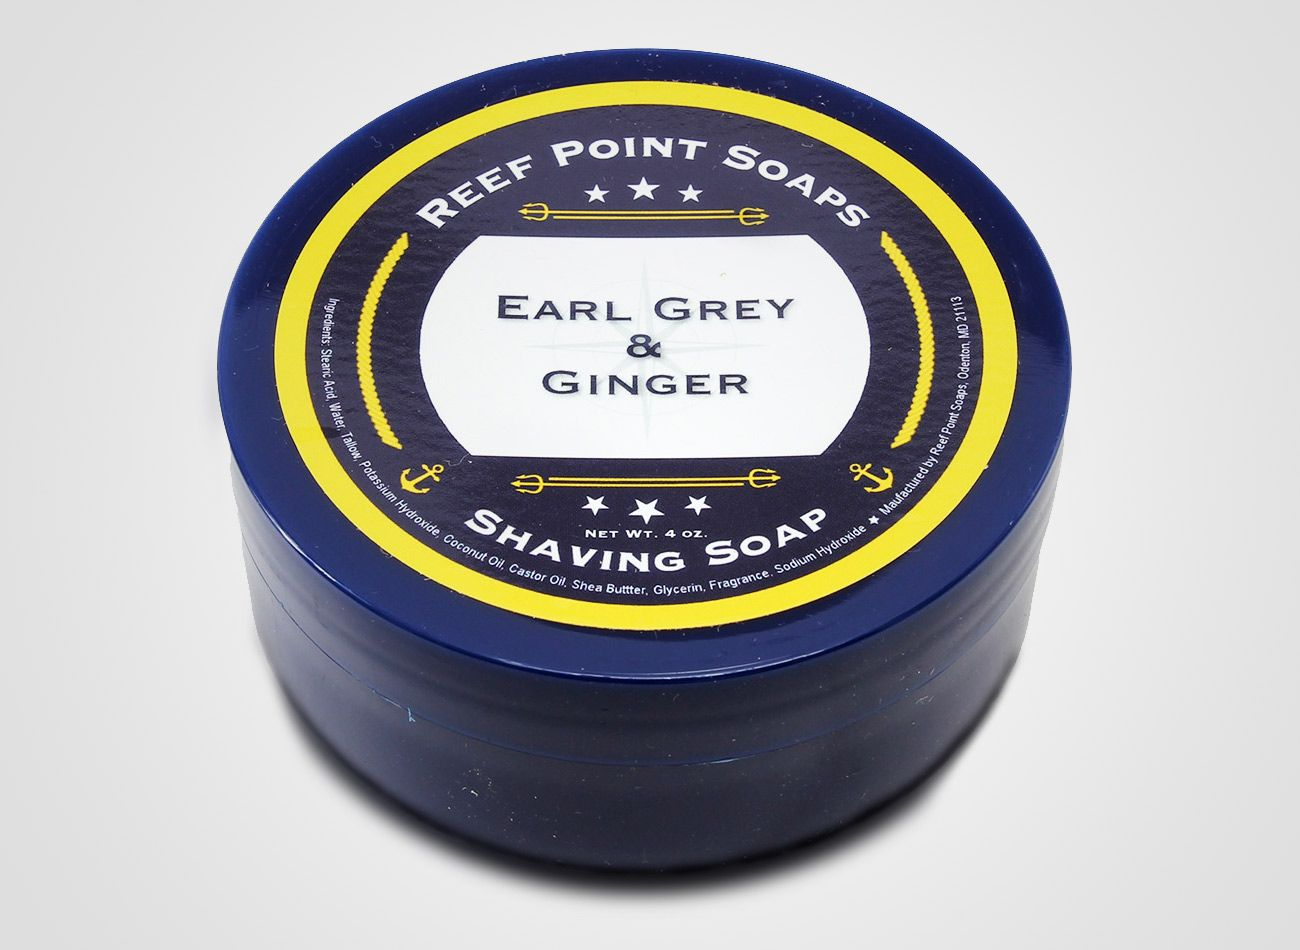 You are currently viewing Reef Point Earl Grey Ginger Shaving Soap